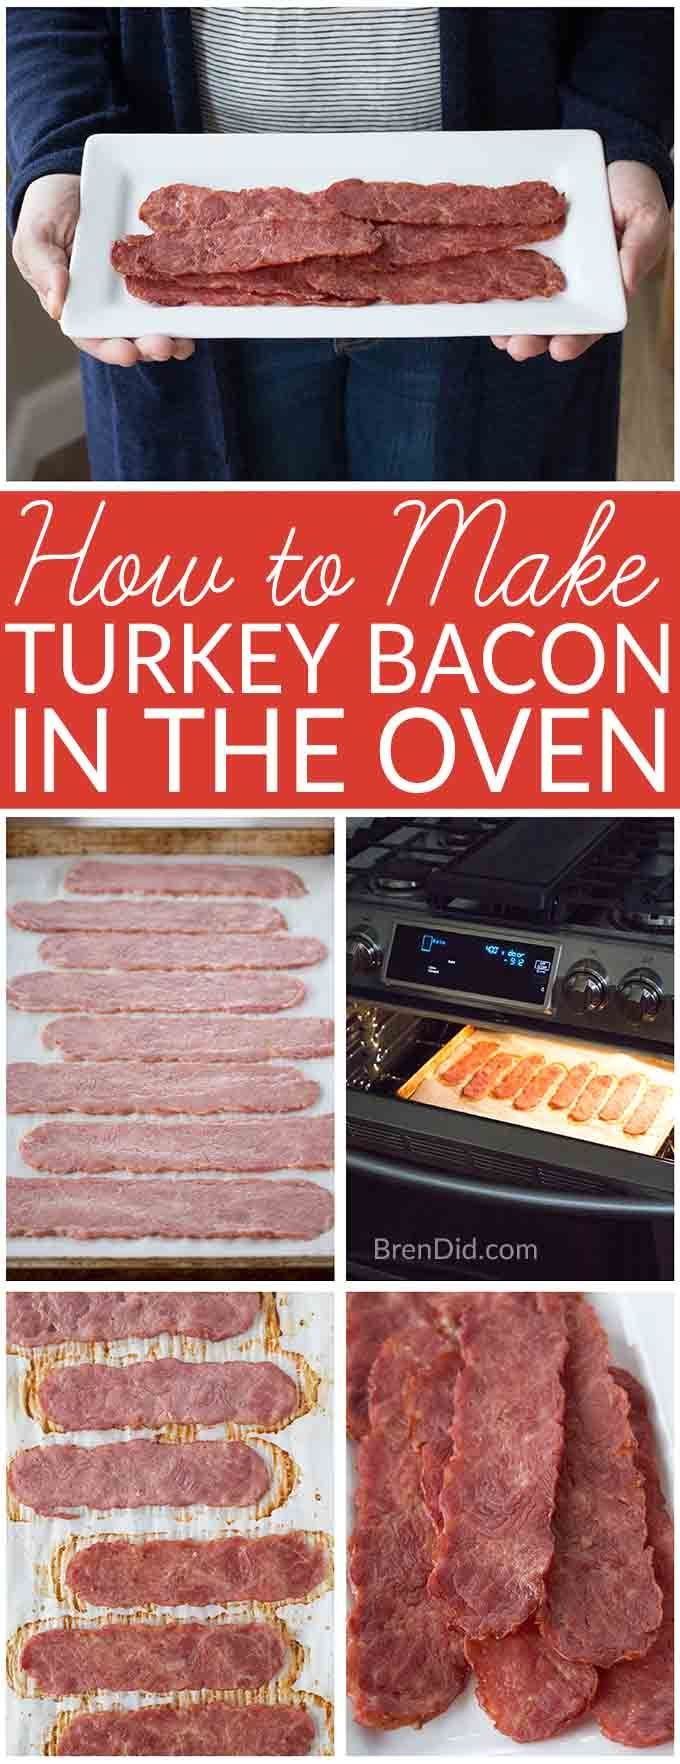 How to Make Turkey Bacon in the Oven